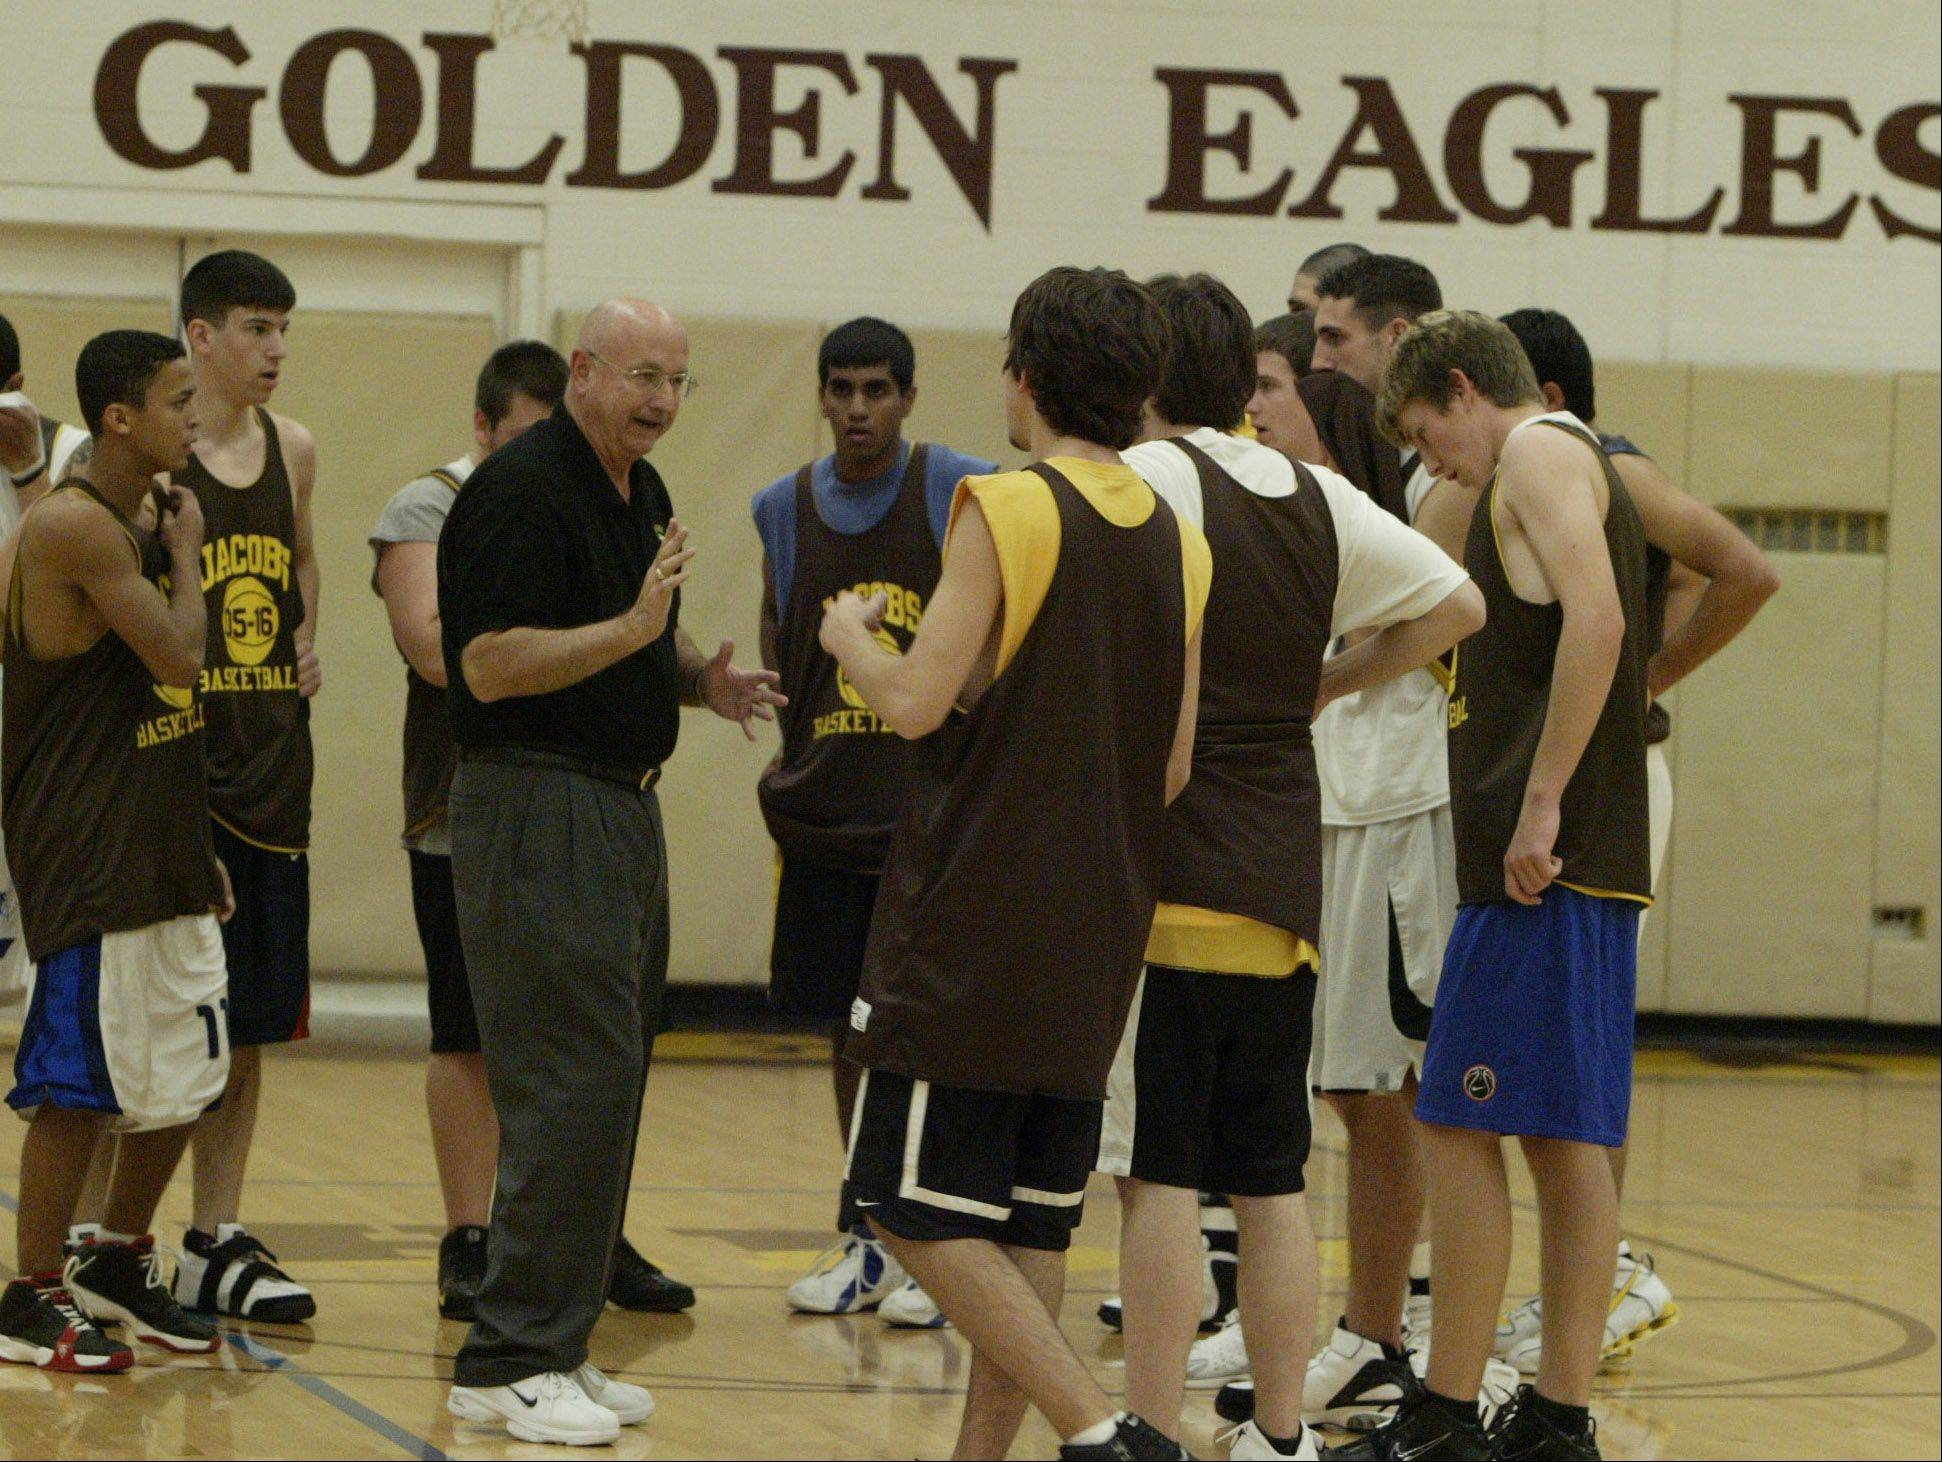 Jacobs boys basketball coach Jim Hinkle instructs his team during practice.